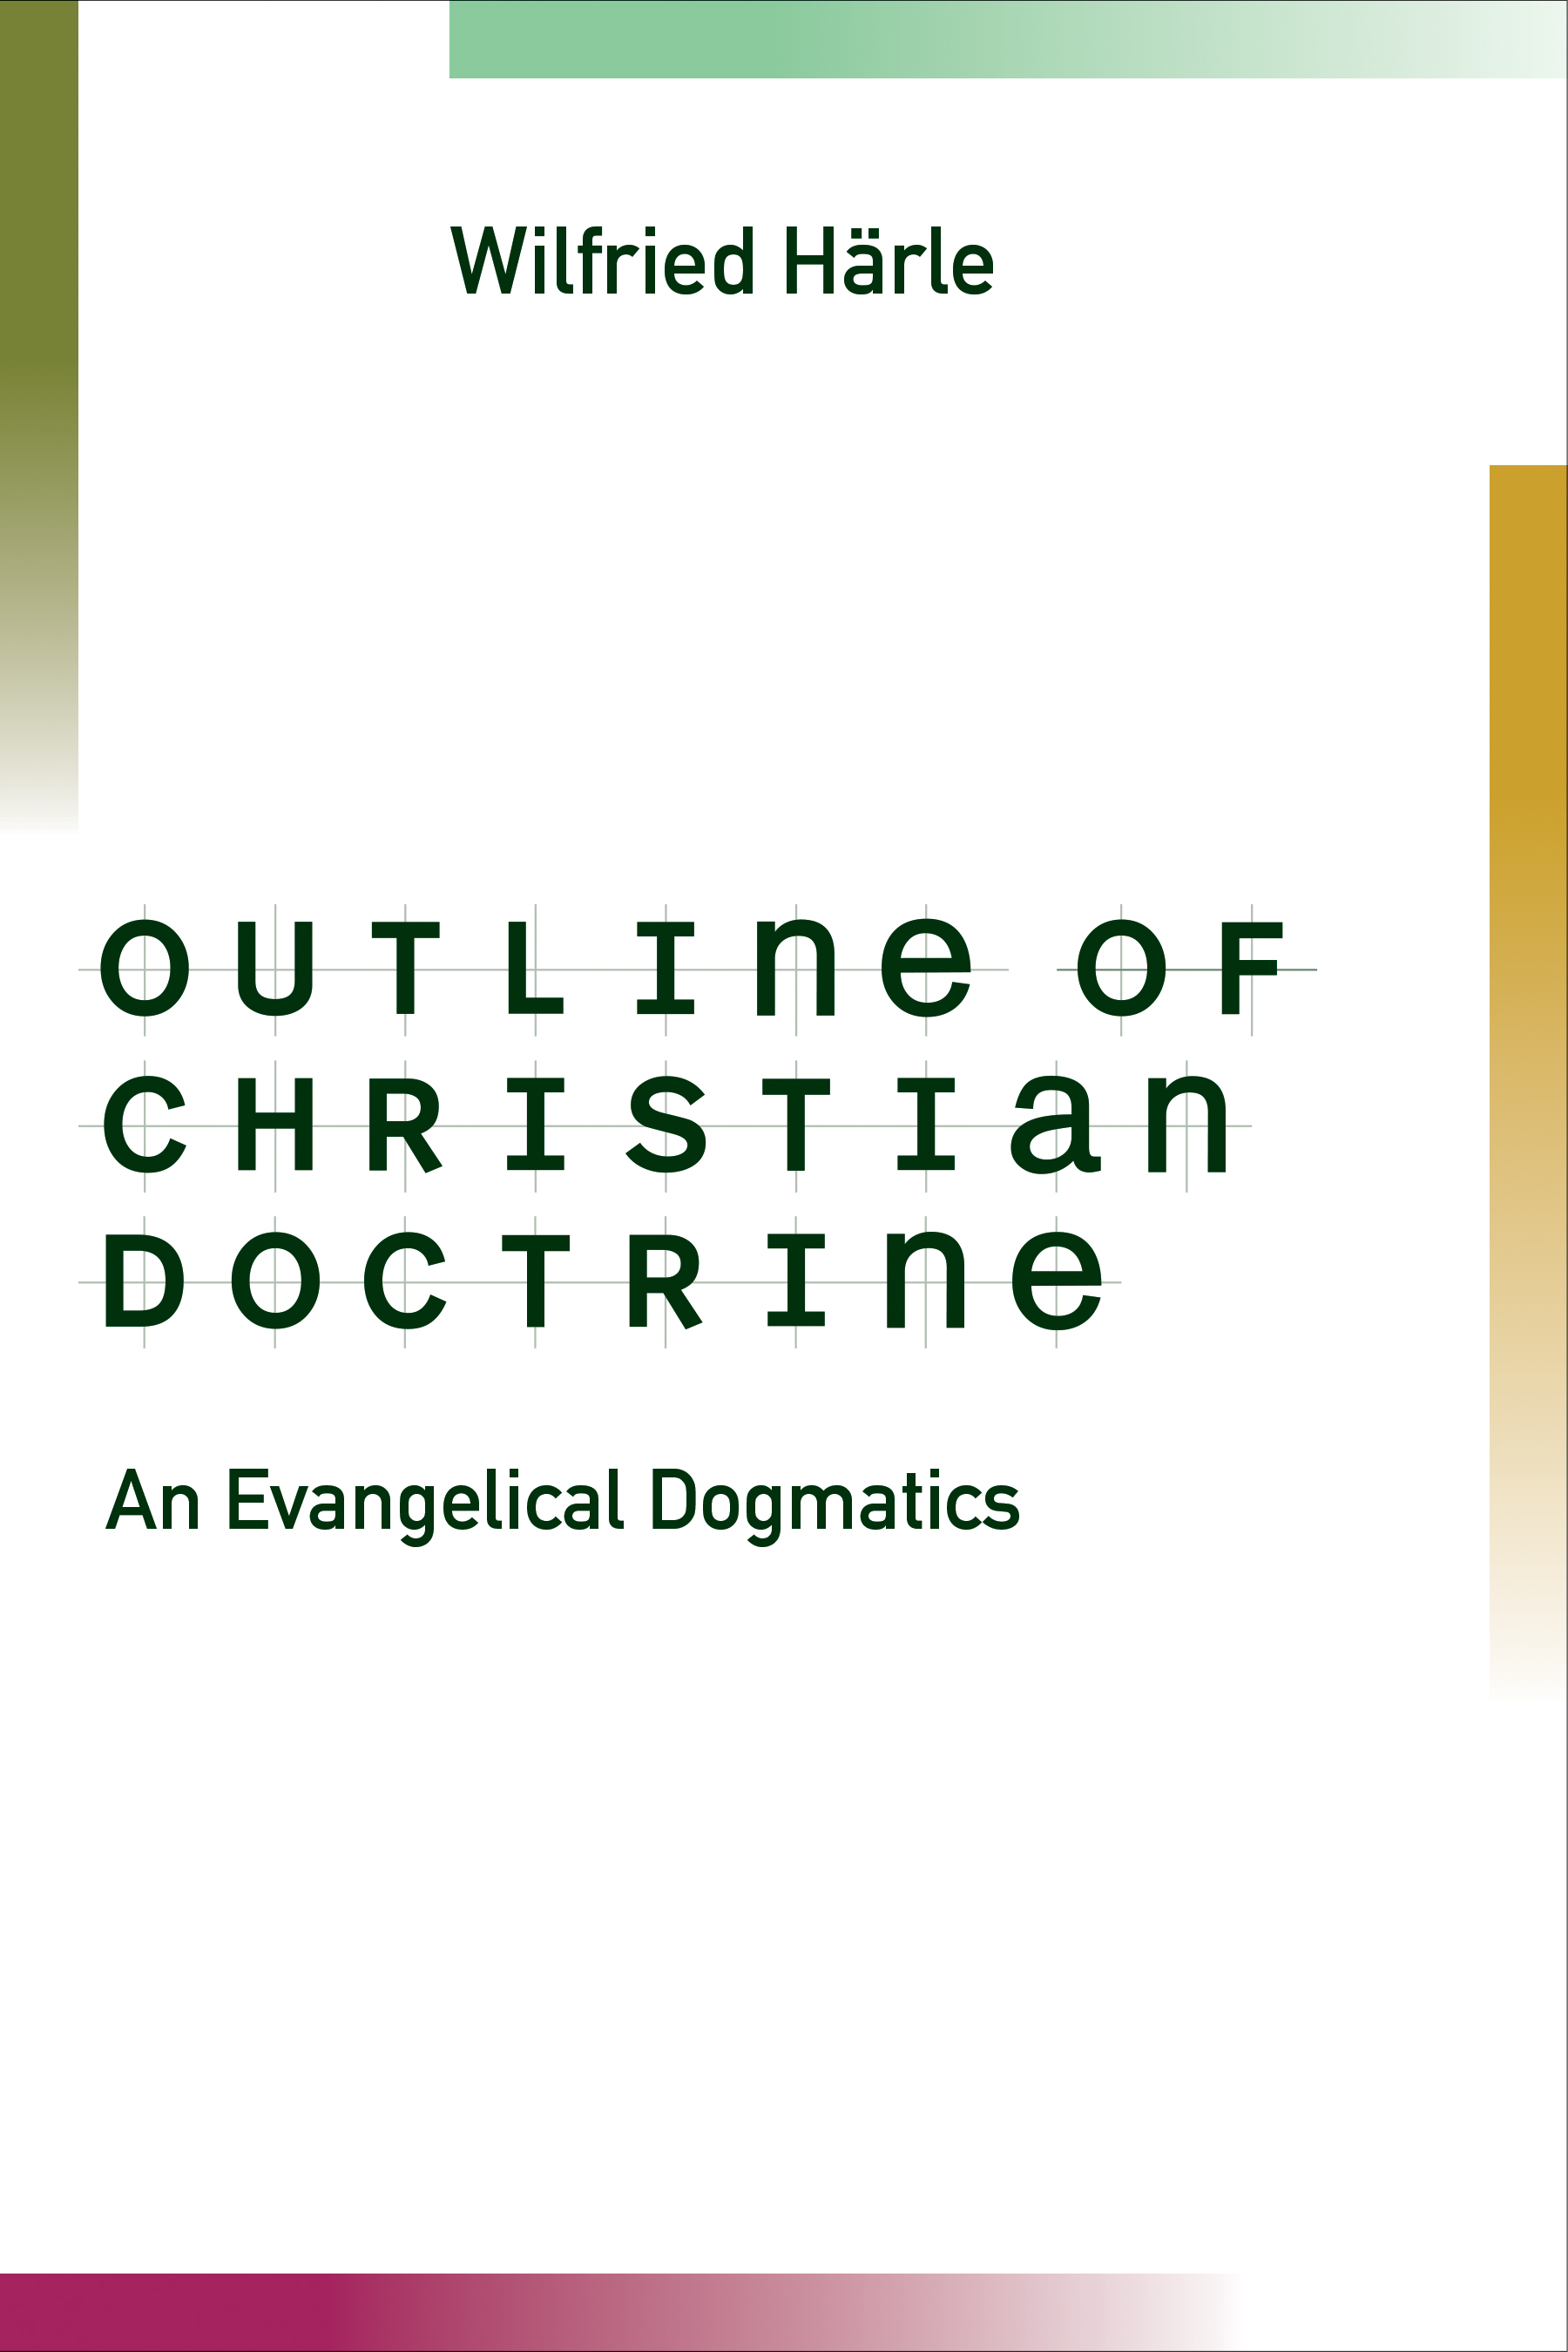 Christ degree doctrine master outline thesis